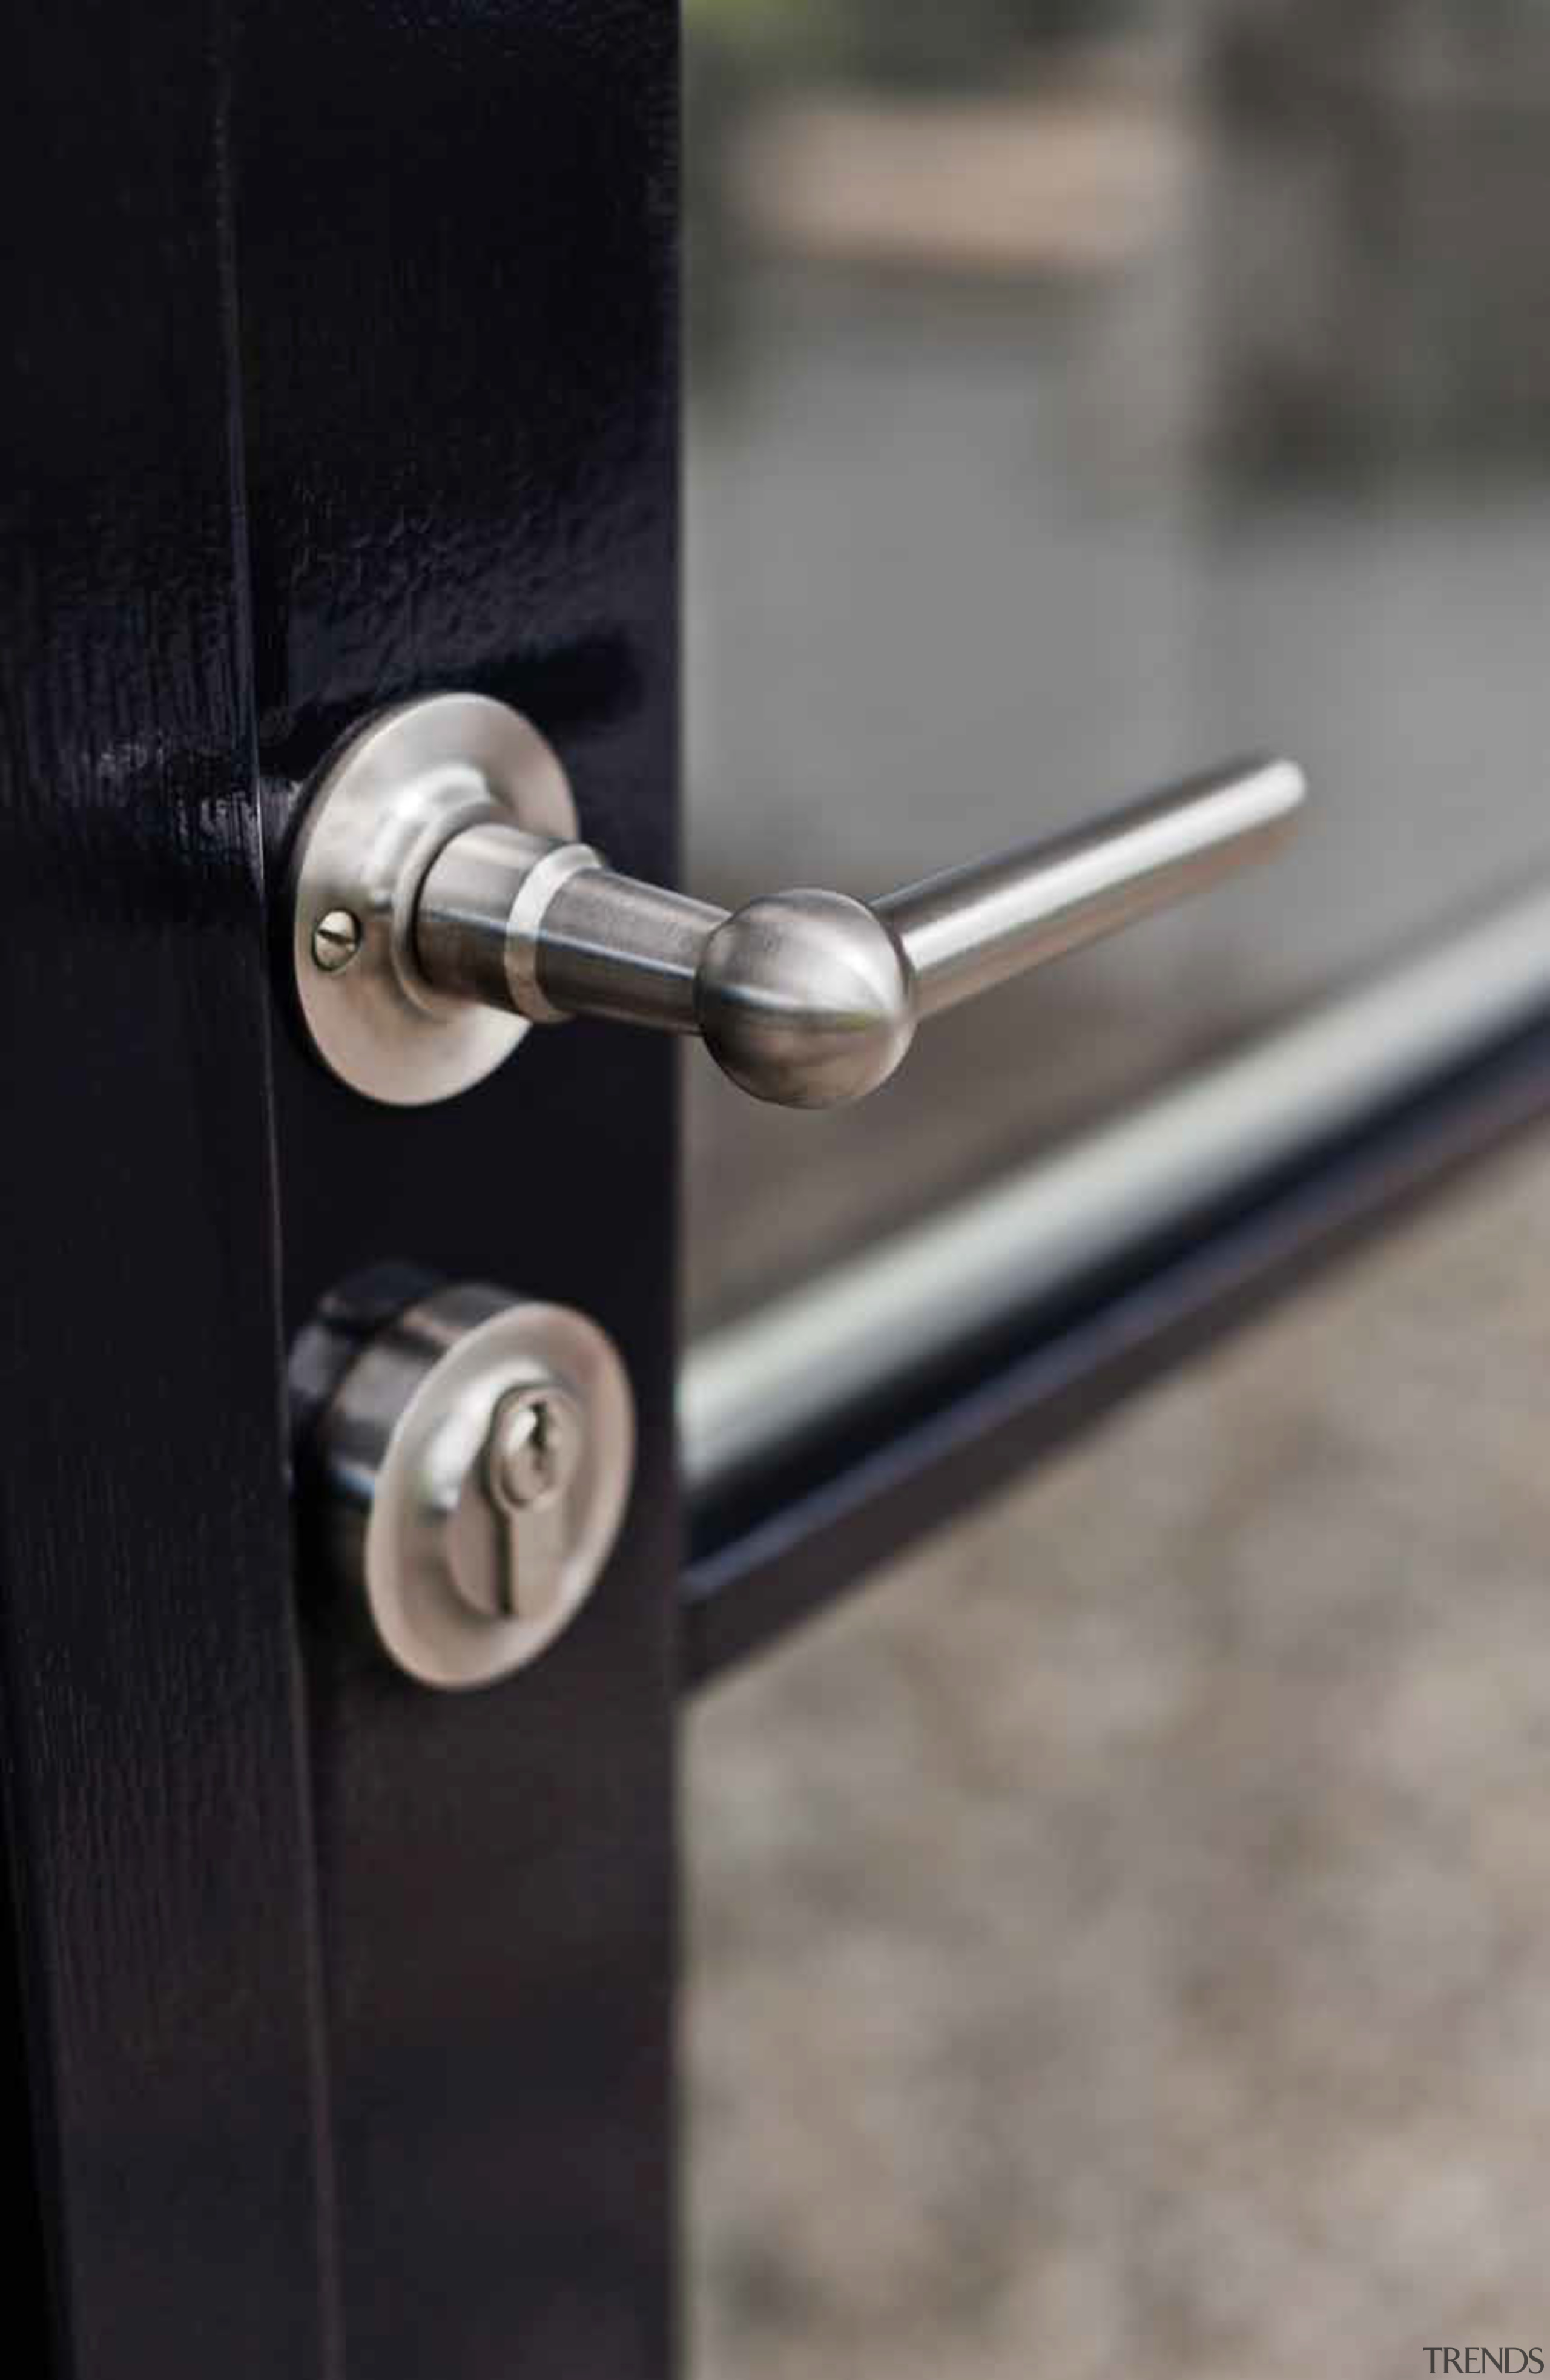 FVL85/40 - Solid Unsprung Lever Handle Attached to lock, metal, gray, black